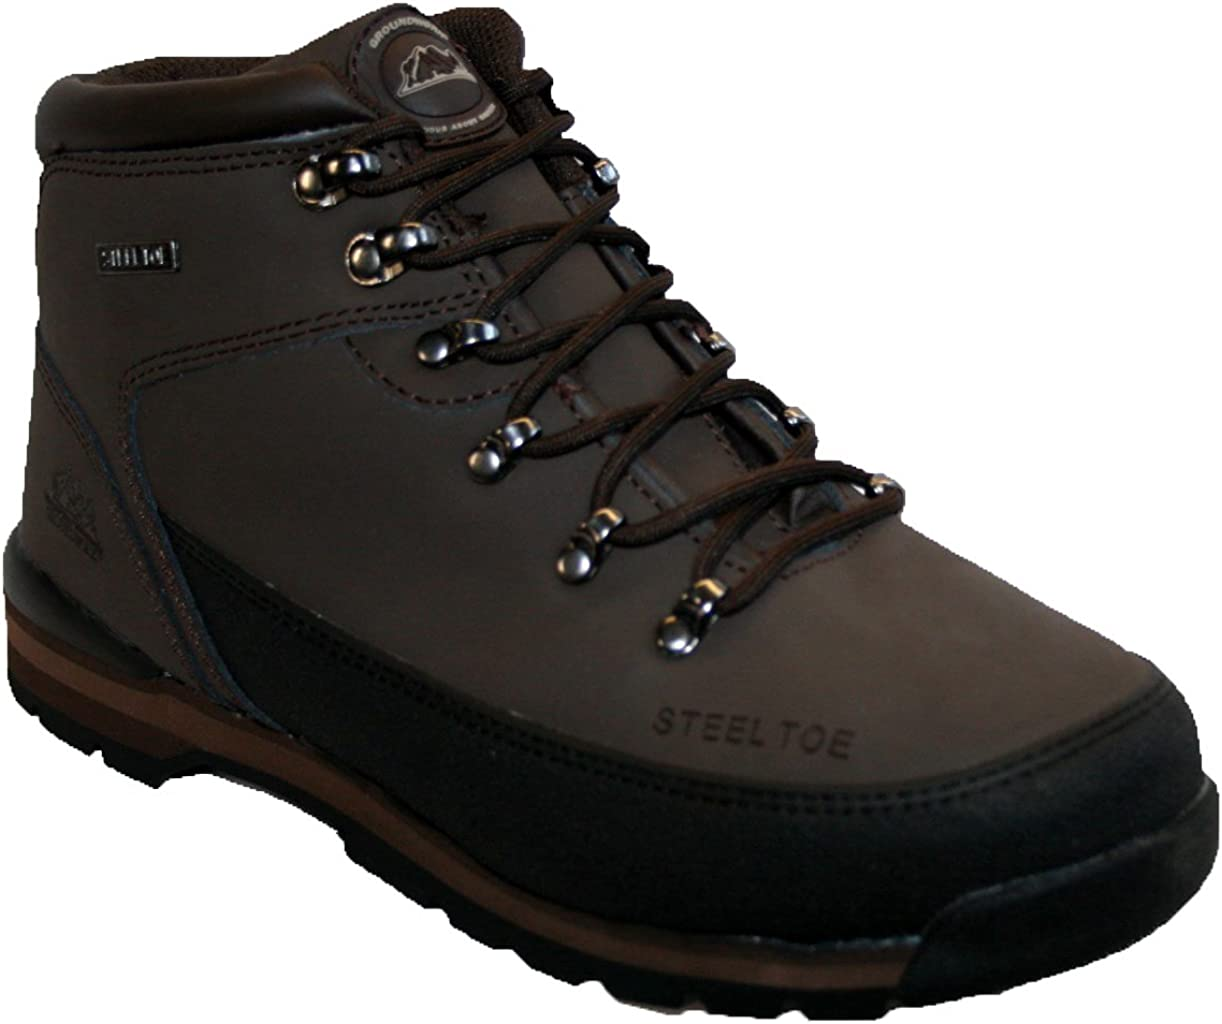 GR77 STEEL TOE CAP BOOT BY GROUNDWORK MENS SAFETY BOOTS MENS WORK BOOTS